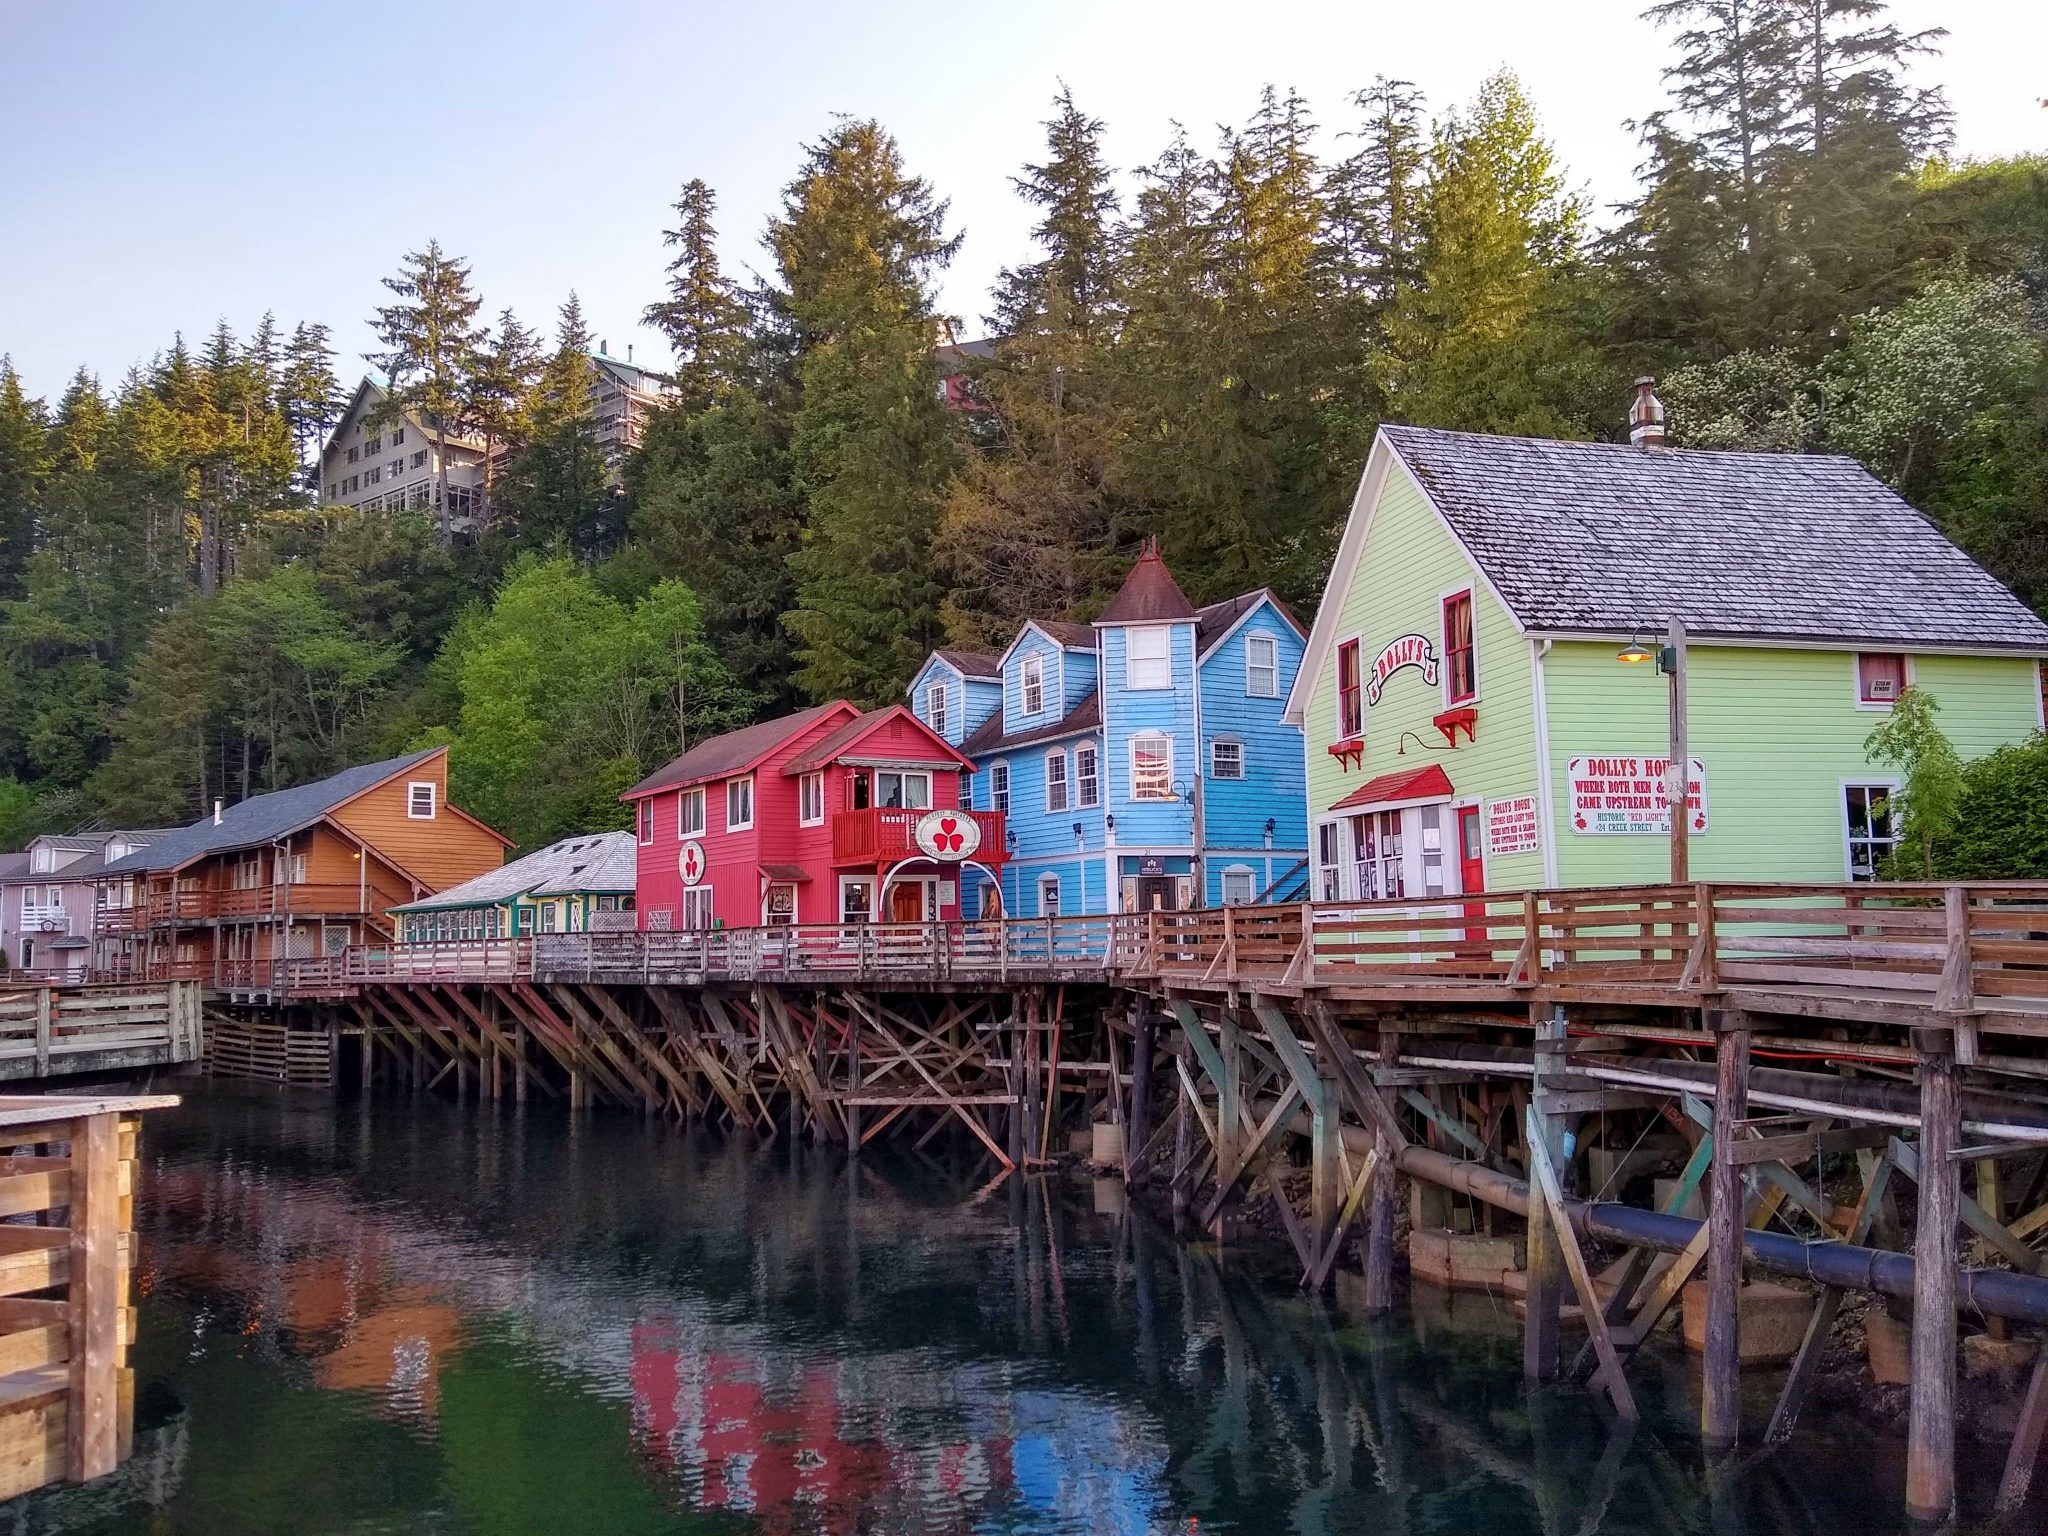 Brightly colored historic buildings are built on stilts against evergreen trees along Creek Street in Ketchikan, Alaska